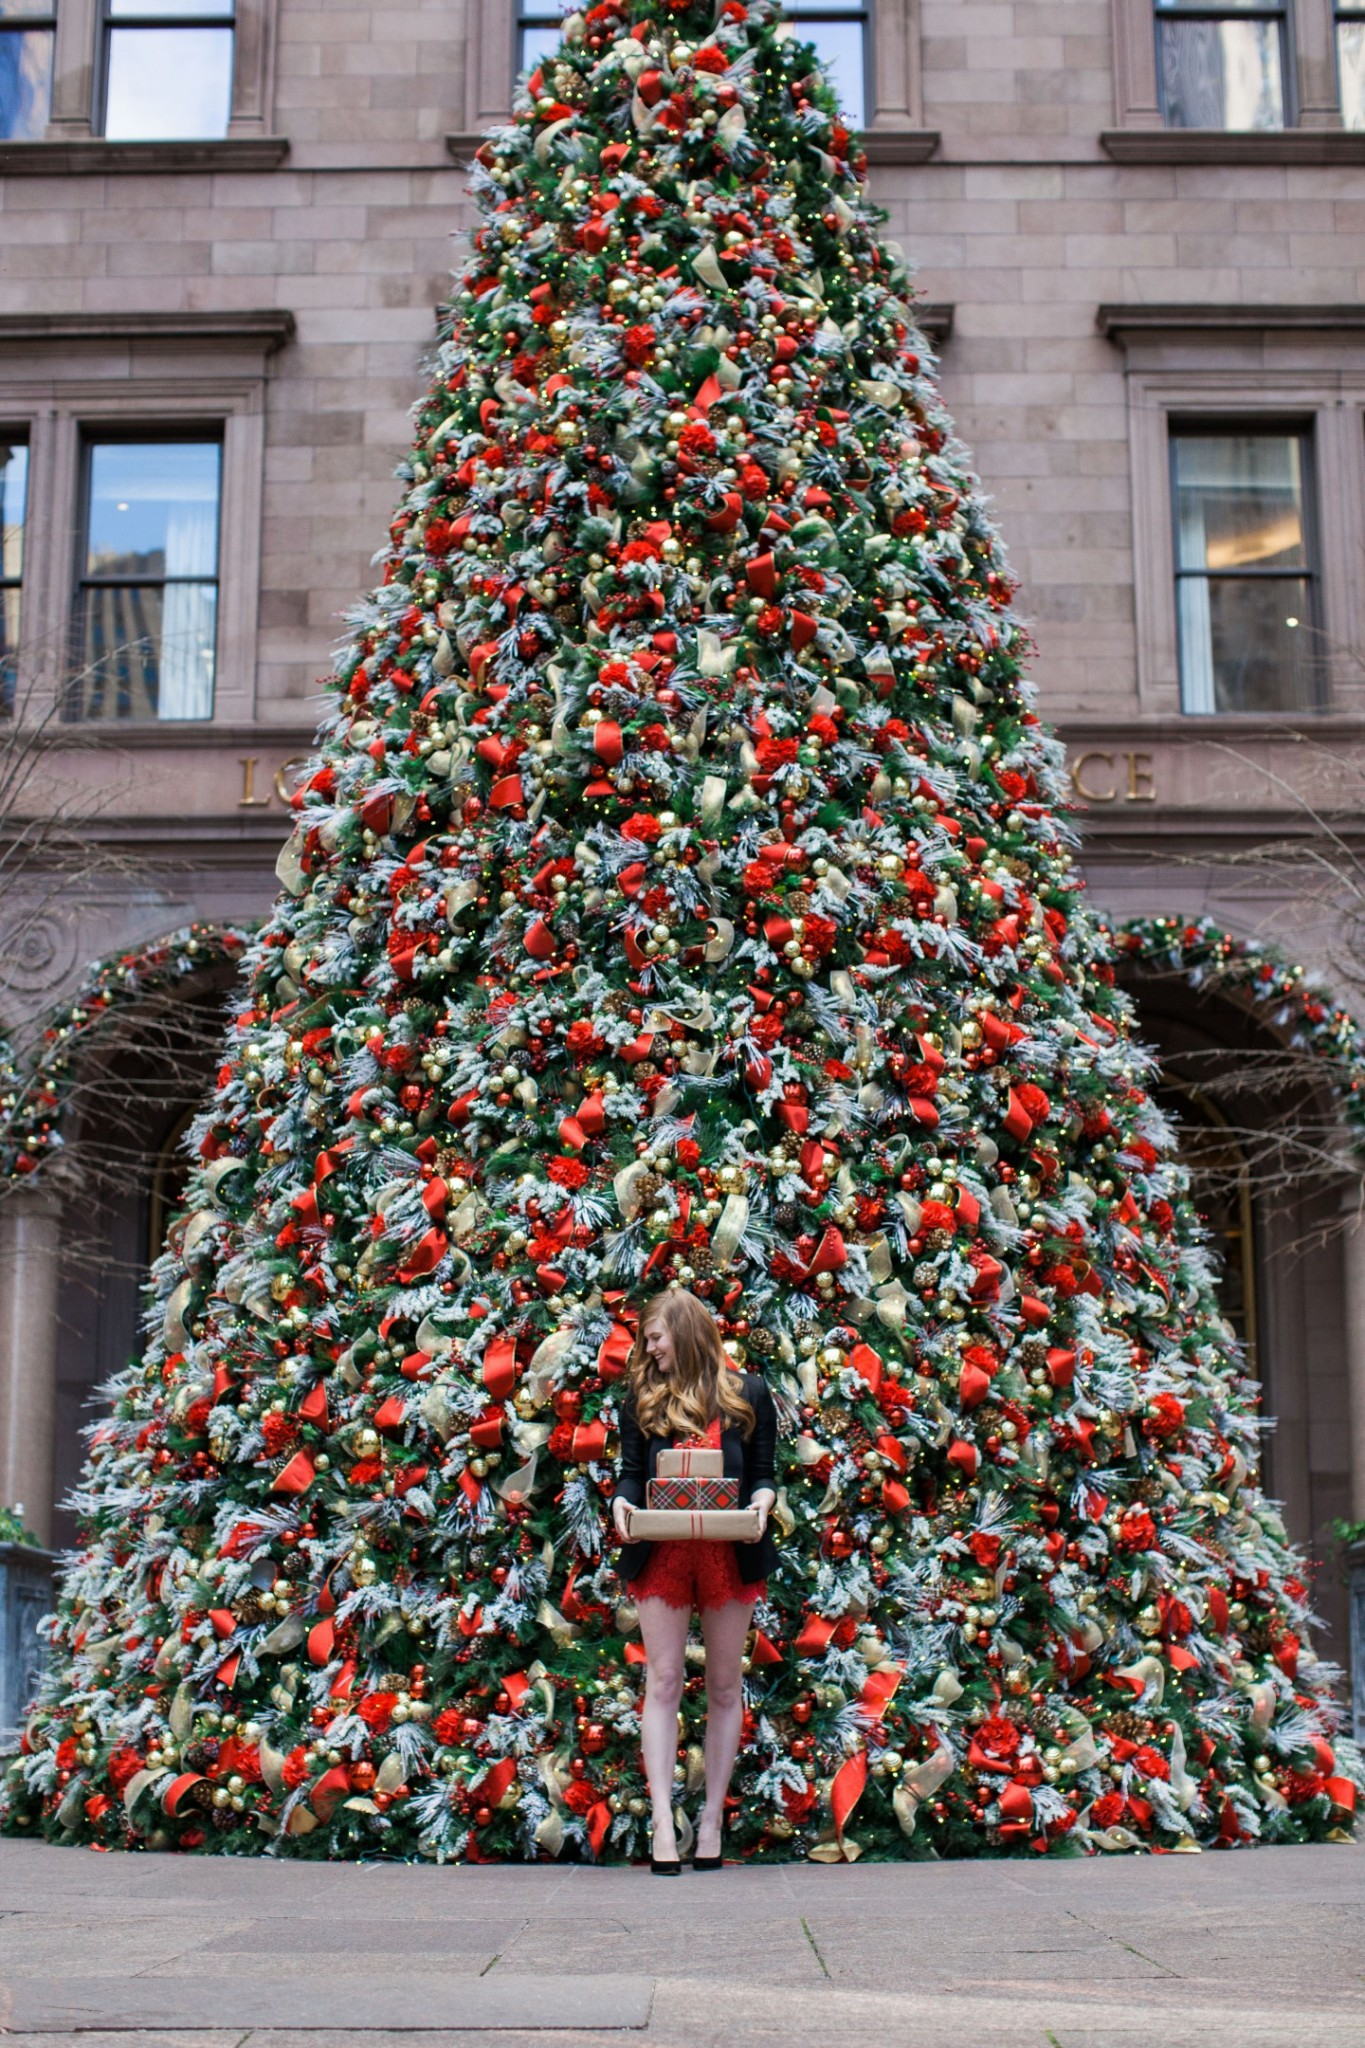 Lifestyle blogger Mollie Sheperdson shares a holiday look at the Lotte Palace in New York City